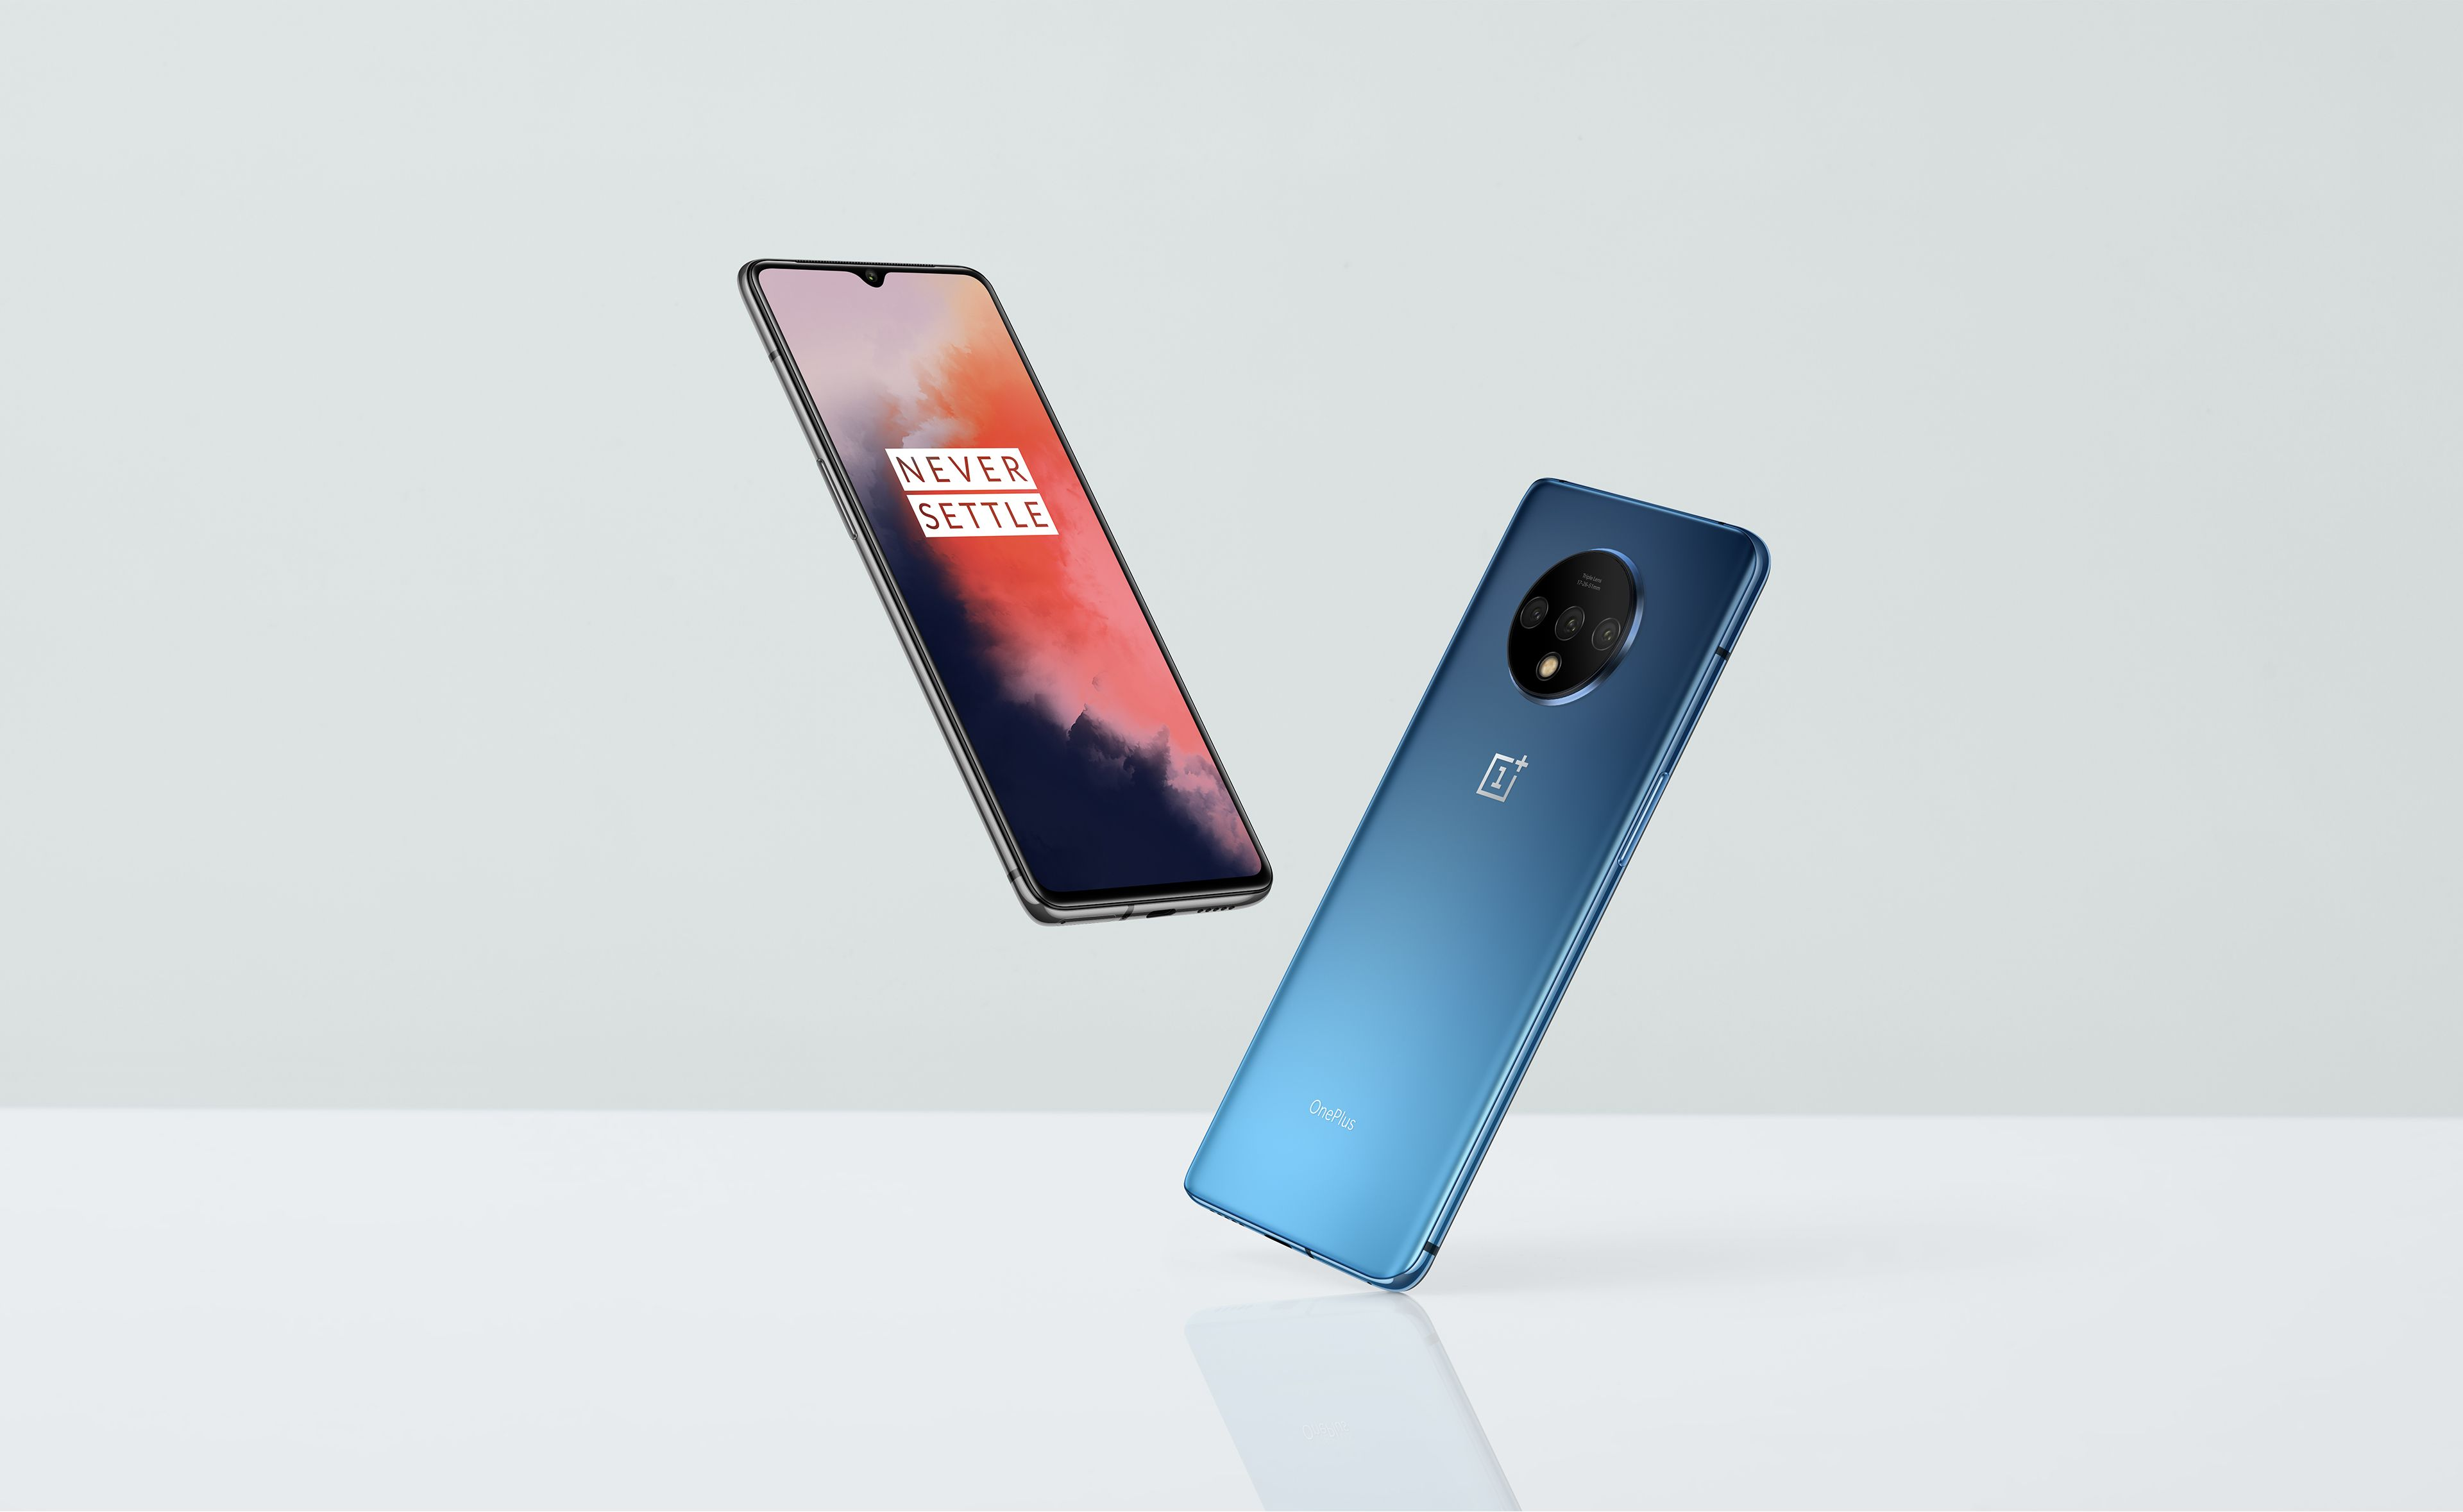 OnePlus 7T launched with 90Hz AMOLED Display & Snapdragon 855+